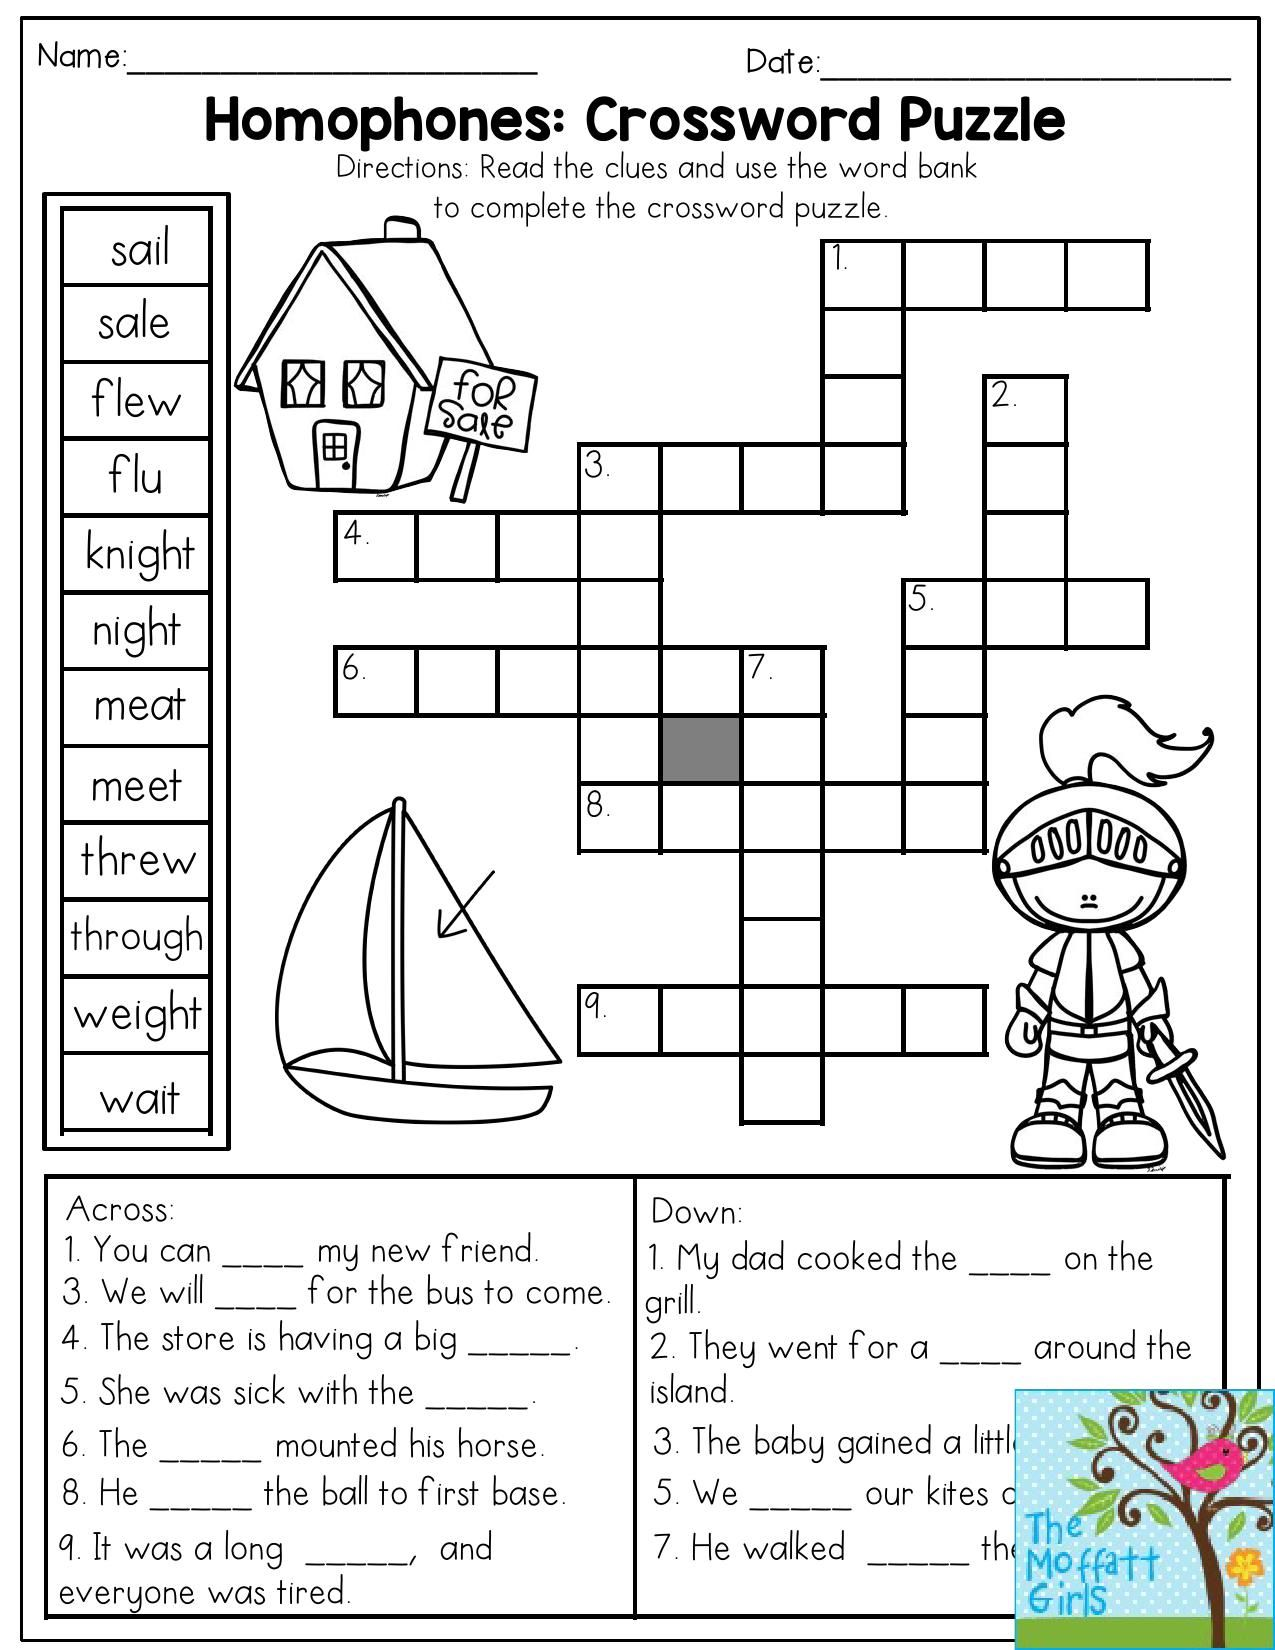 worksheet Fun Language Arts Worksheets cut and glue the words to make pairs of synonyms language arts week 24 lang homophones crossword puzzle read clues use word bank complete fun word